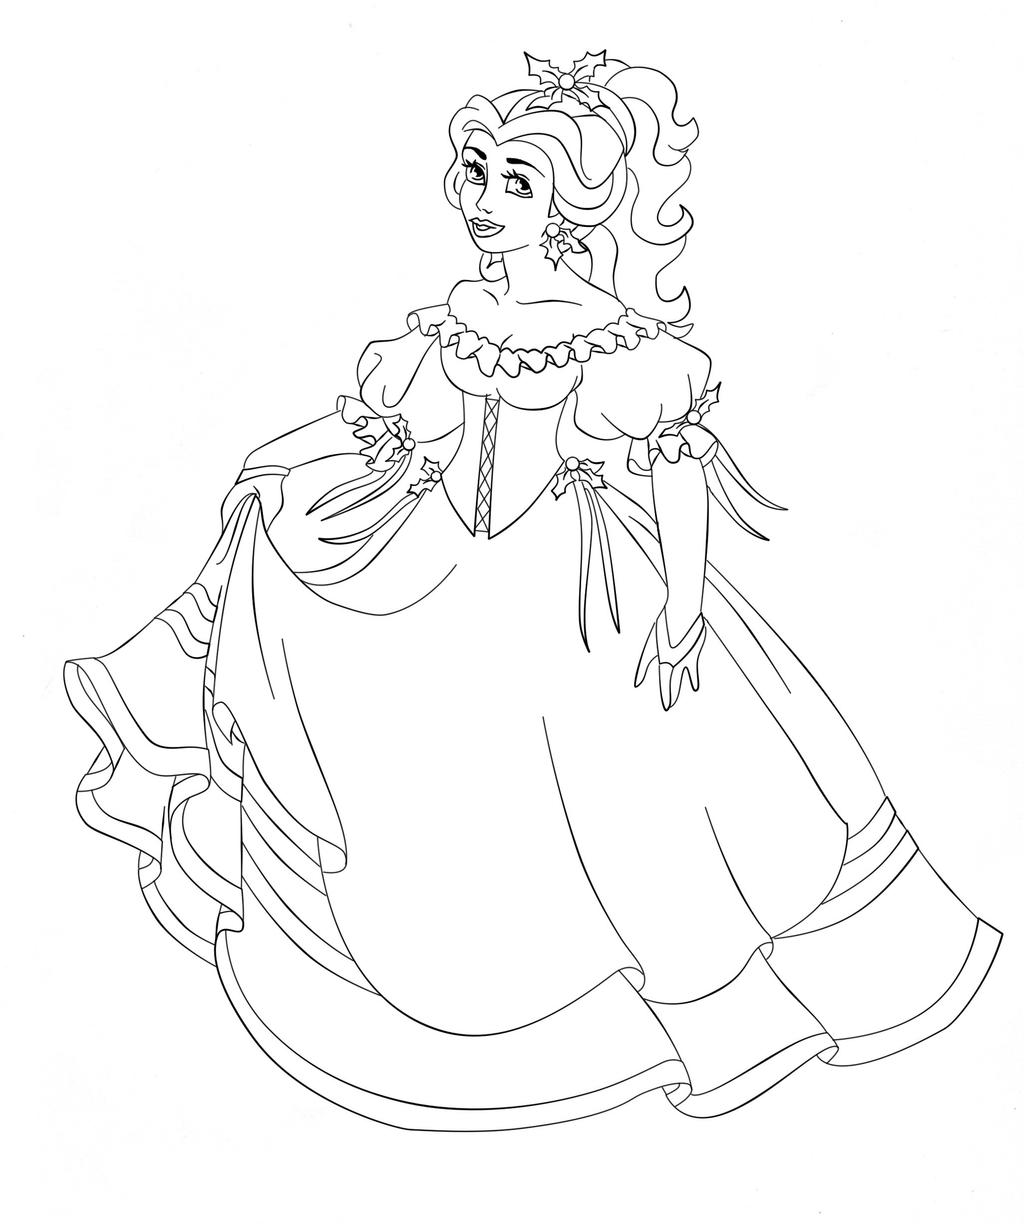 belle disney coloring pages - belle disney christmas by paola tosca on deviantart